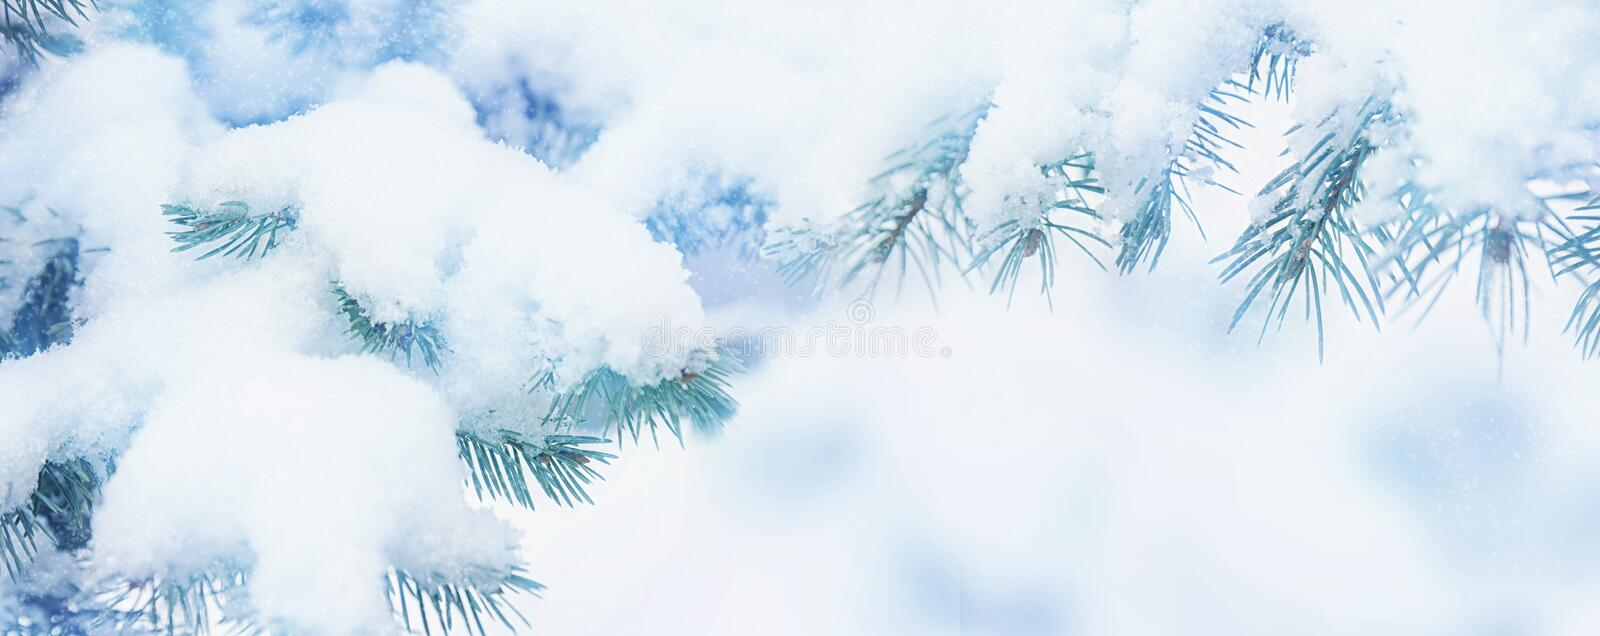 Winter fir tree holiday snow background. Blue spruce, snowflakes. Beautiful Christmas or New year blurred background stock image